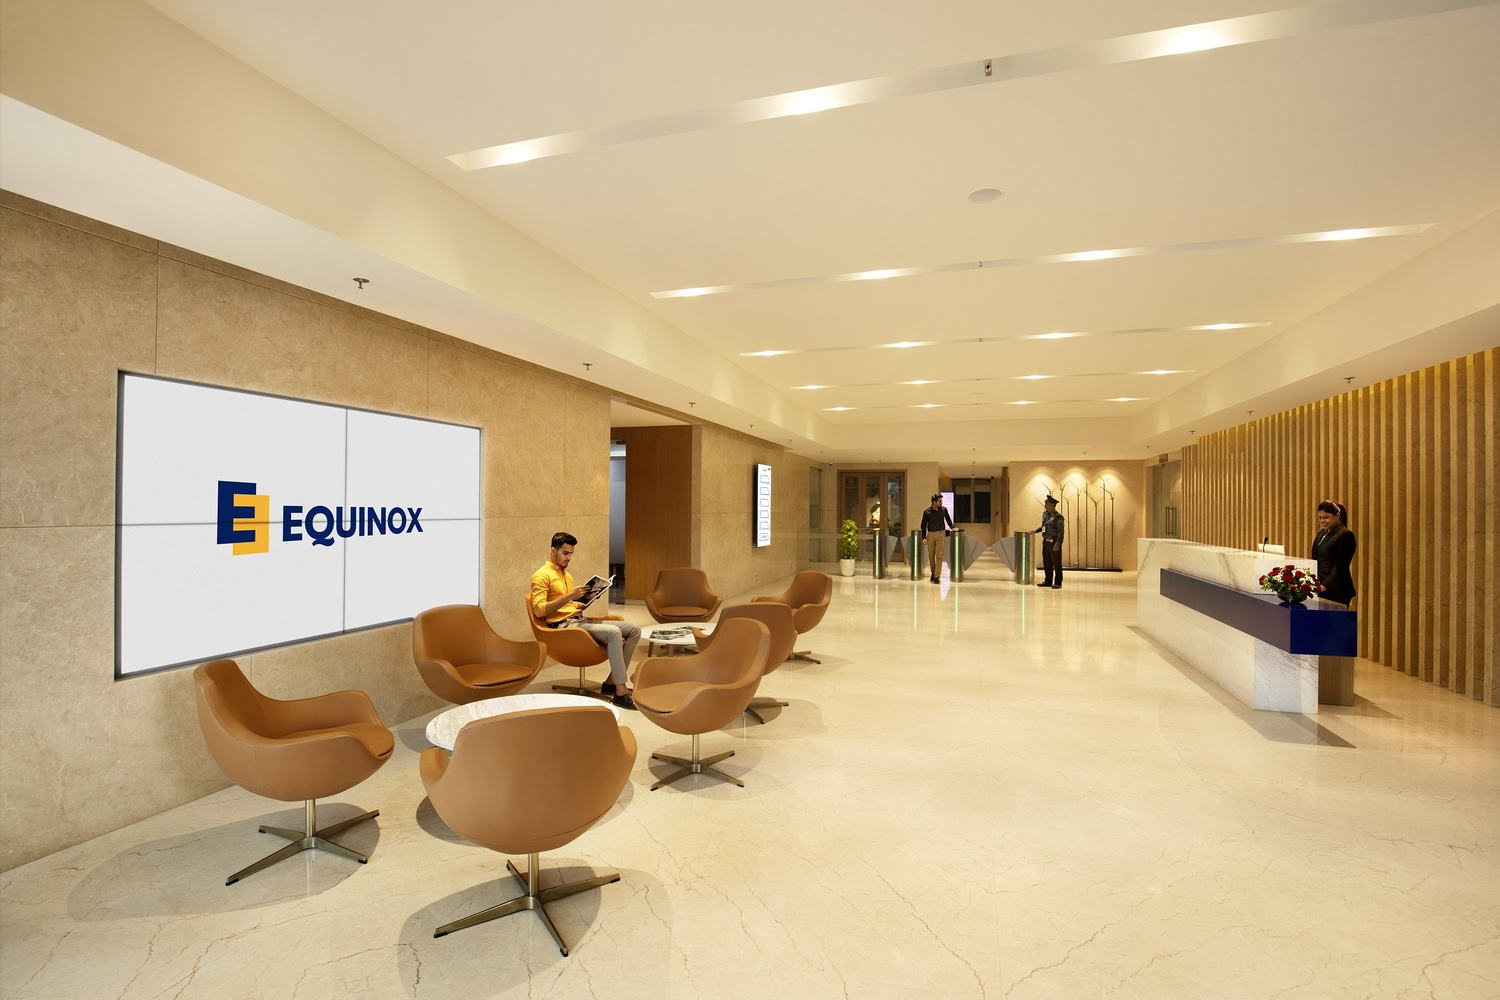 A group of people inside the Equinox lobby that is full of chairs and tables with a tiled floor.